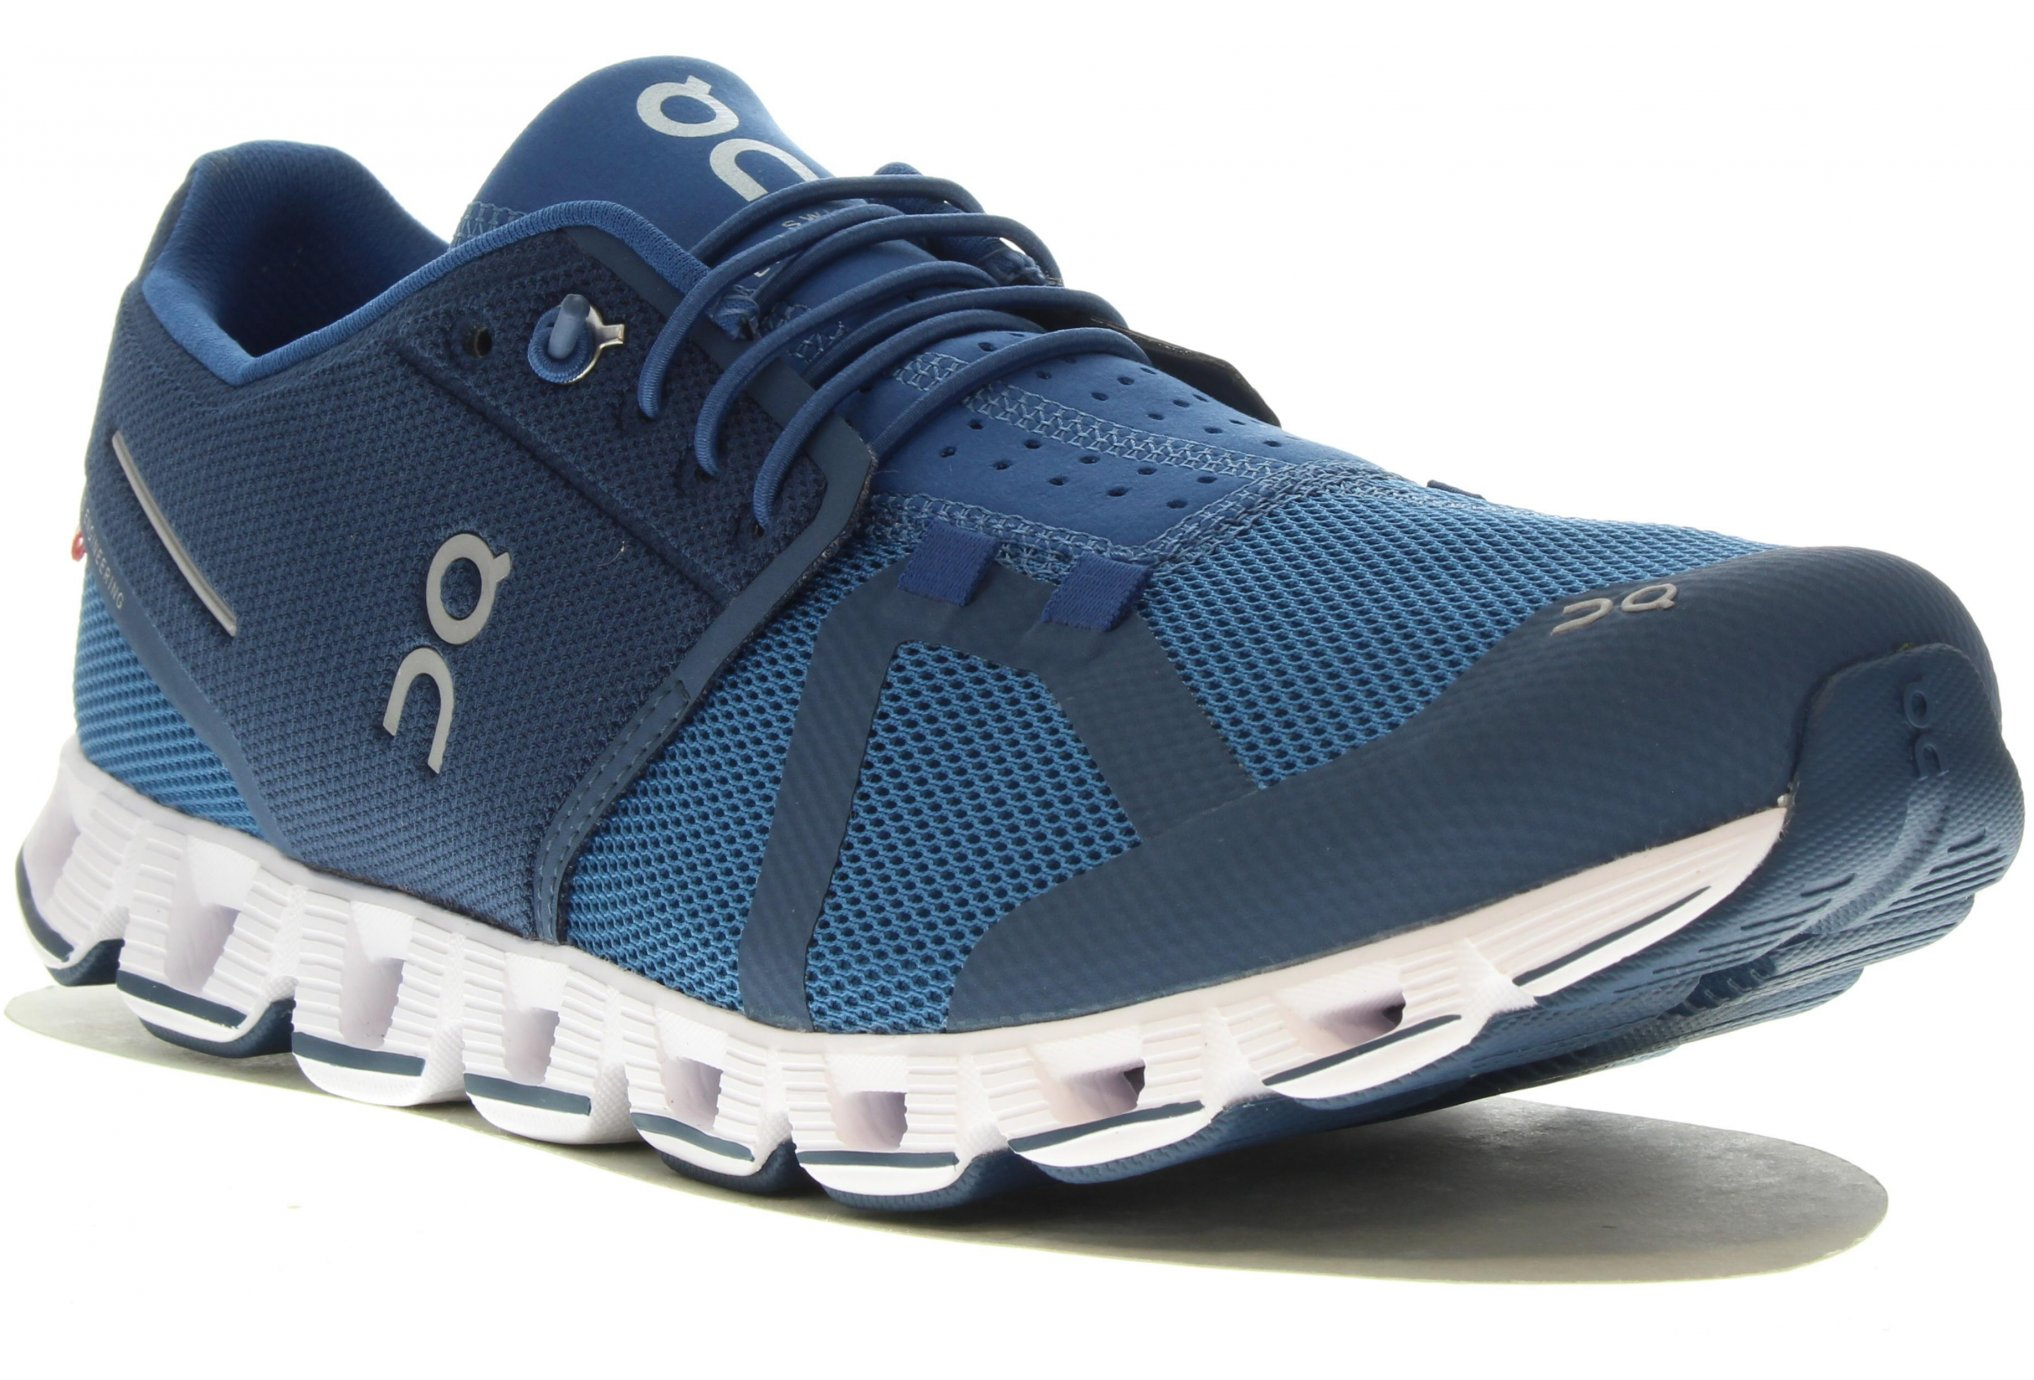 61736a1754fdb9 On-Running Cloudflyer M homme Bleu pas cher